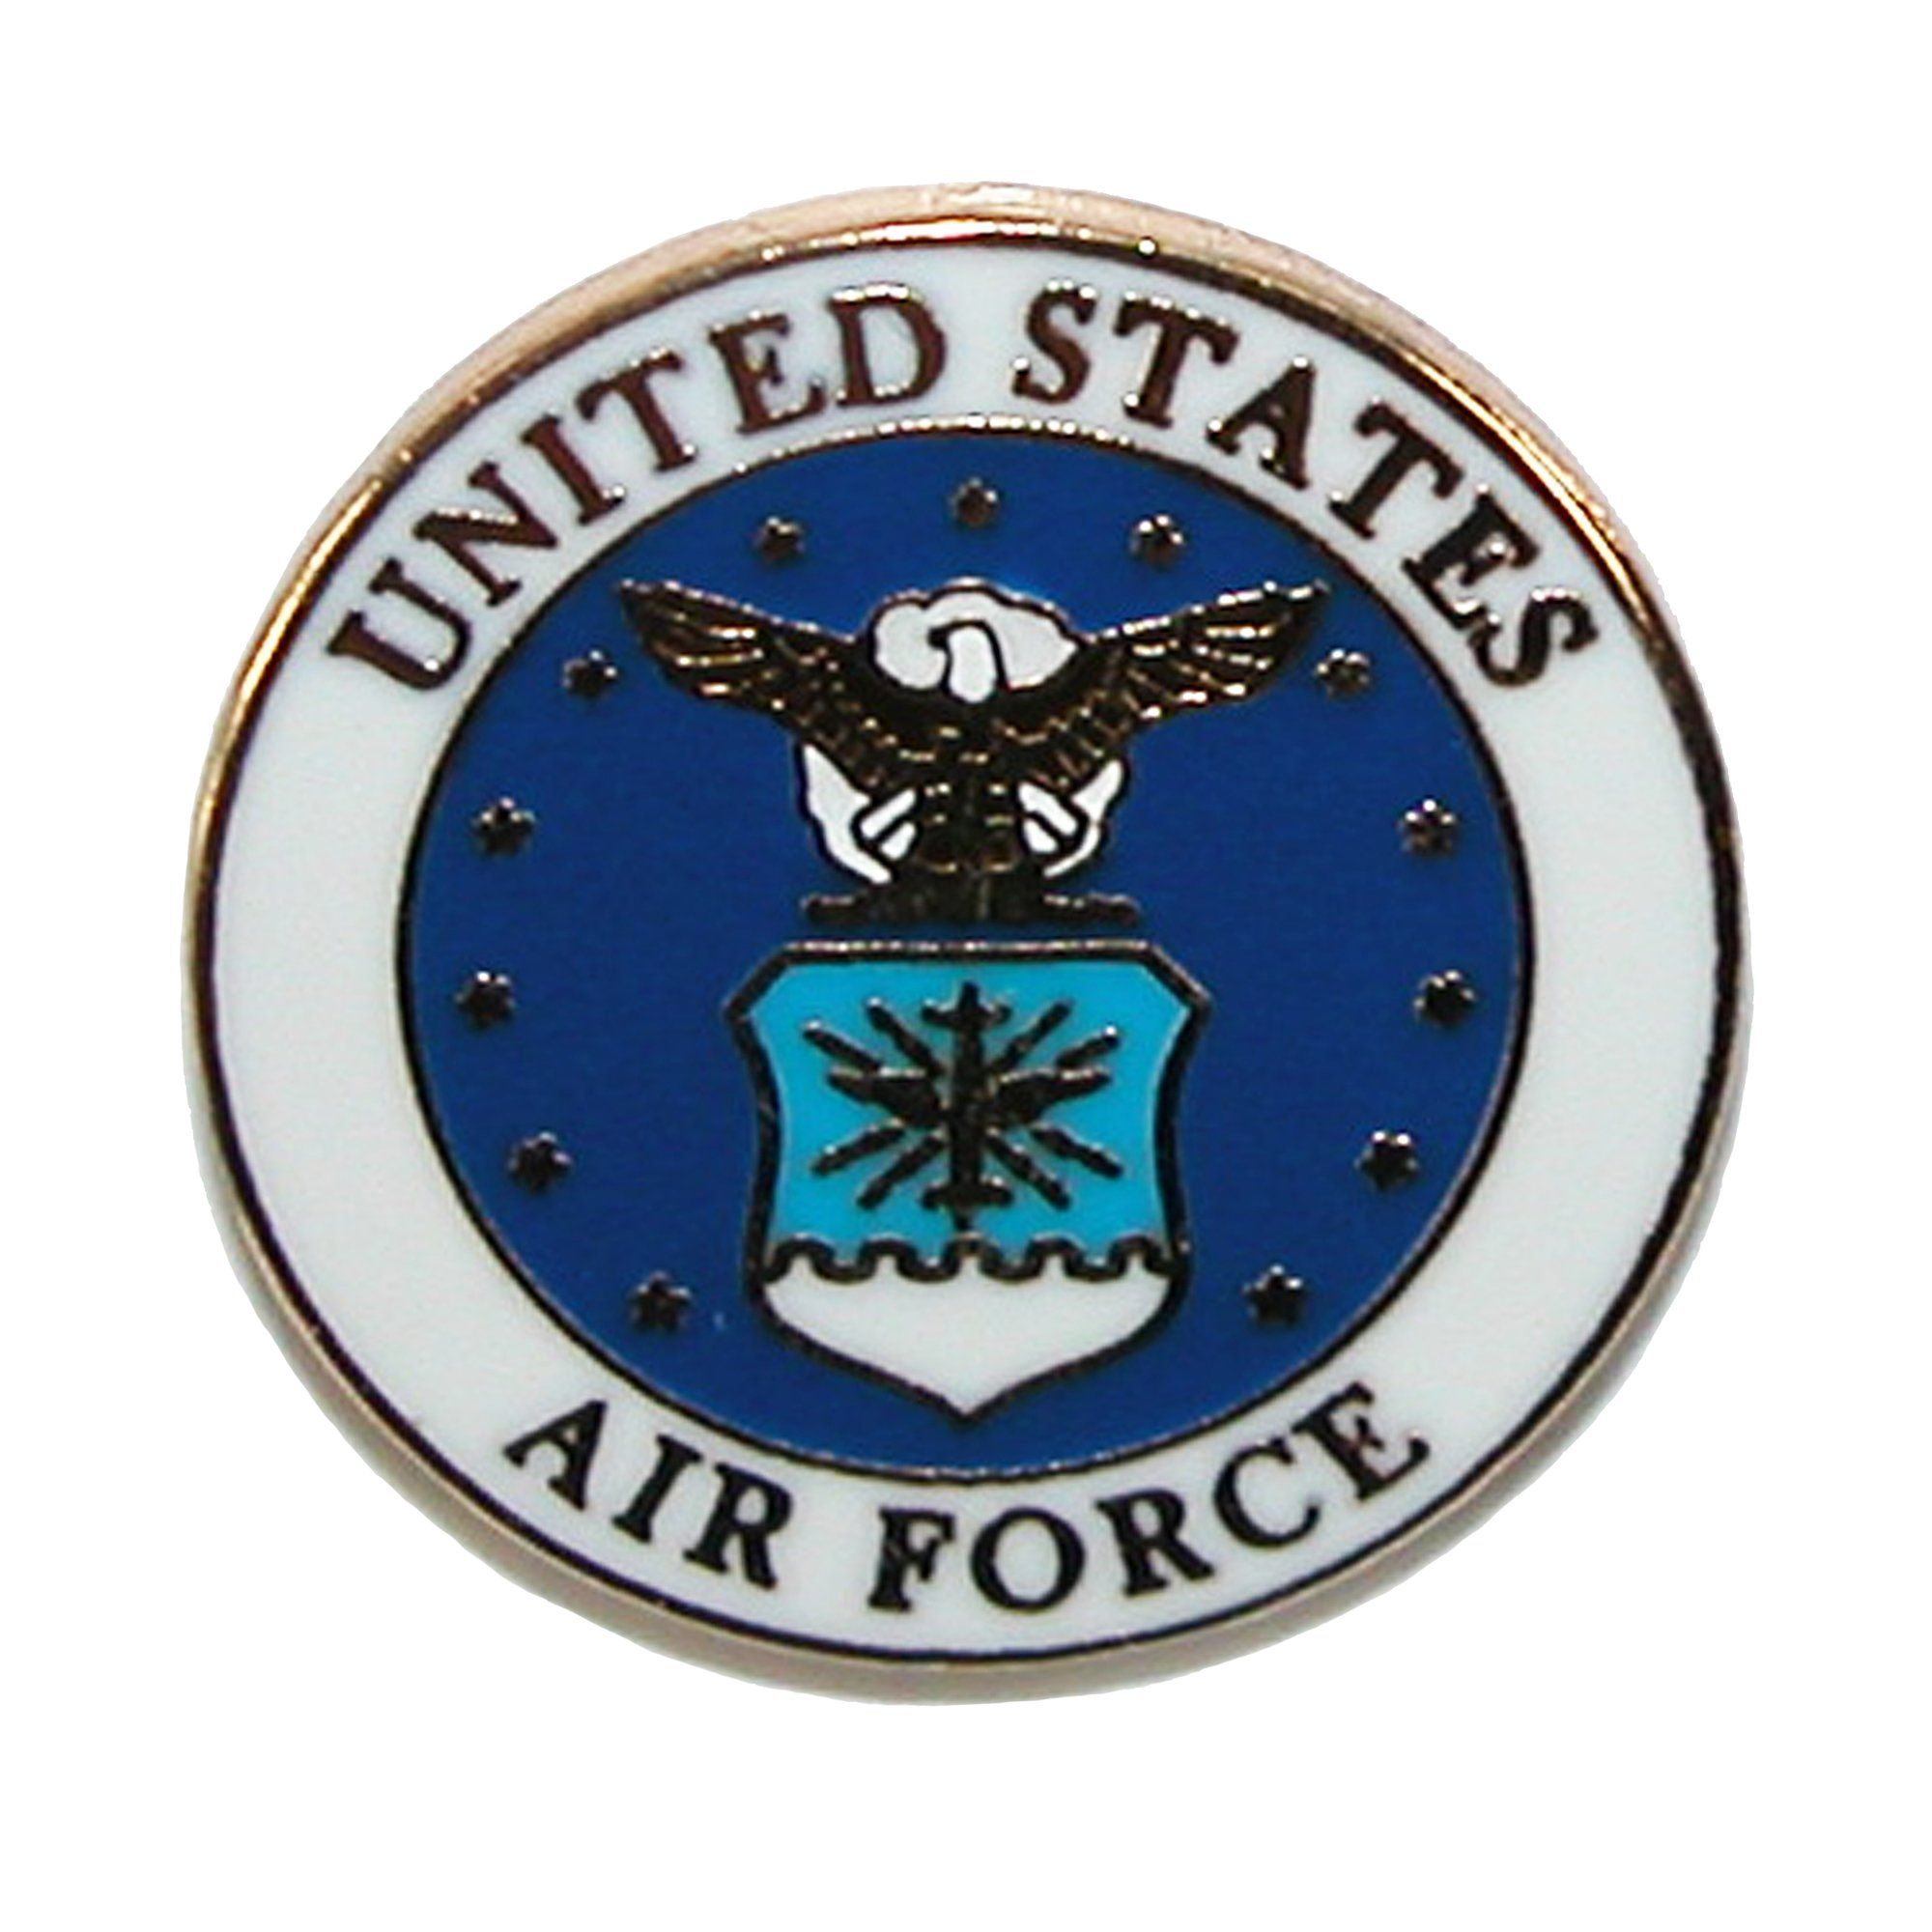 Competition Inc. United States Air Force Lapel Pin Lapel